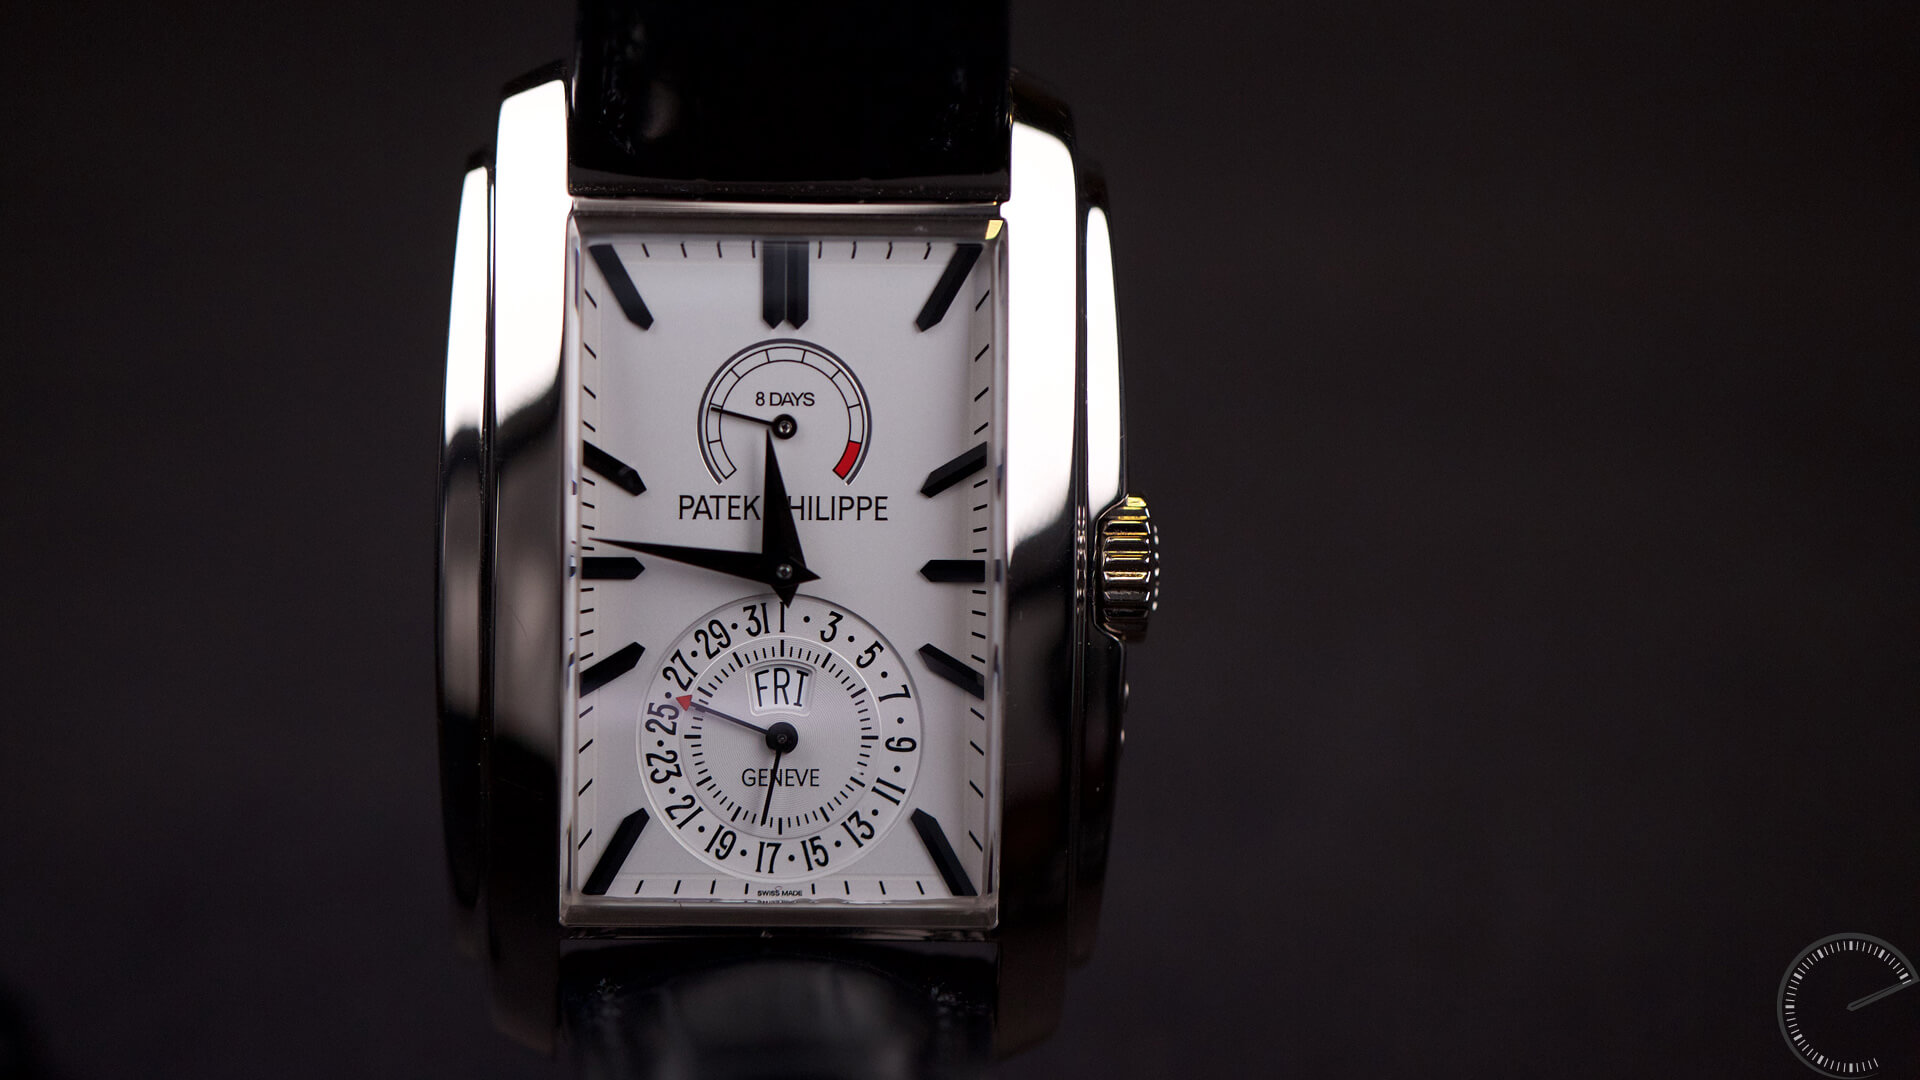 Image for watch review of Patek Philippe Gondolo Ref 5200G in white gold - annual calendar and power reserve